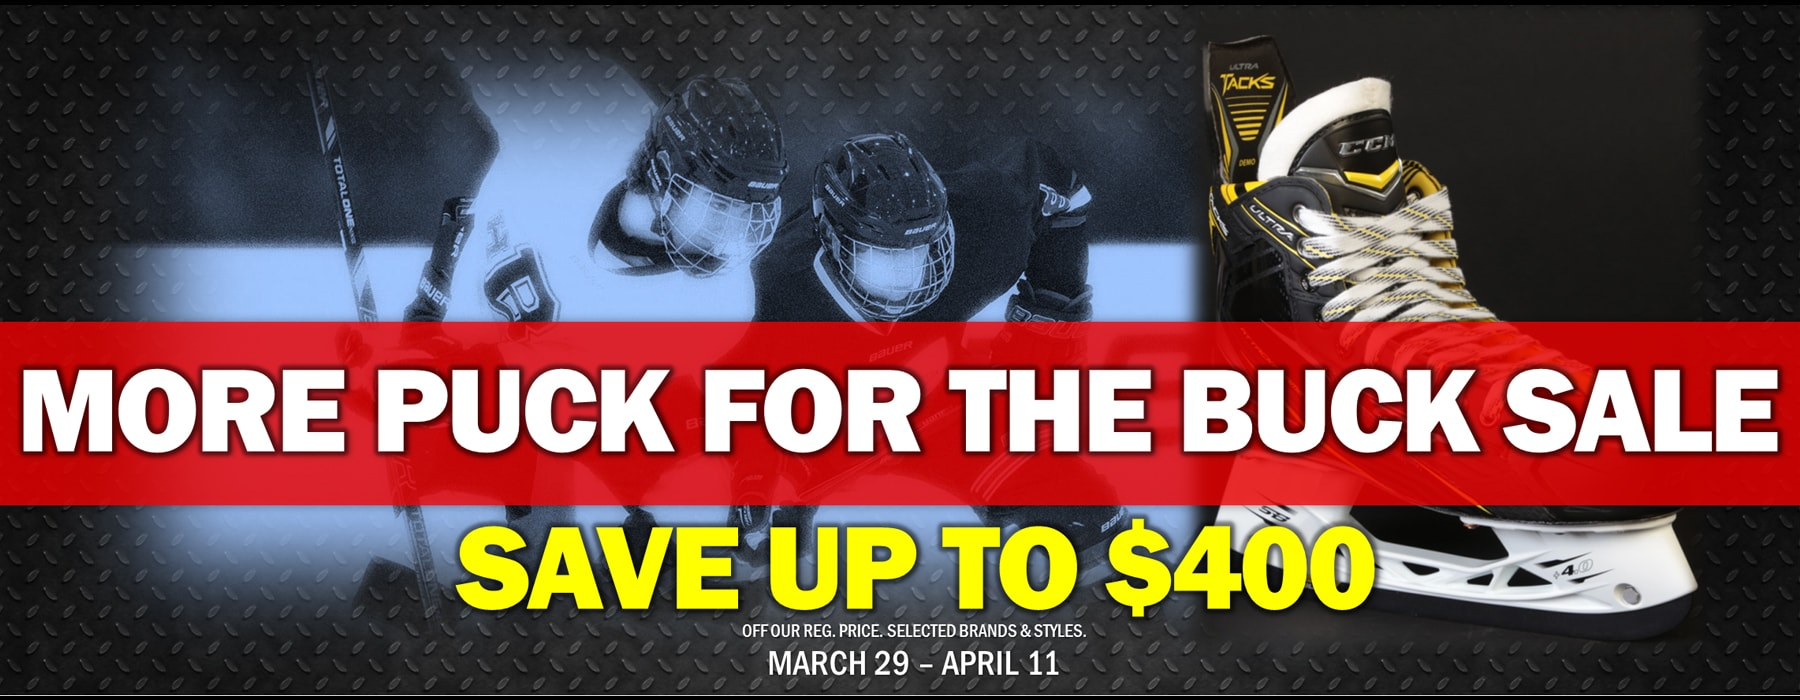 More Puck For The Buck Sale - March 29 - April 11